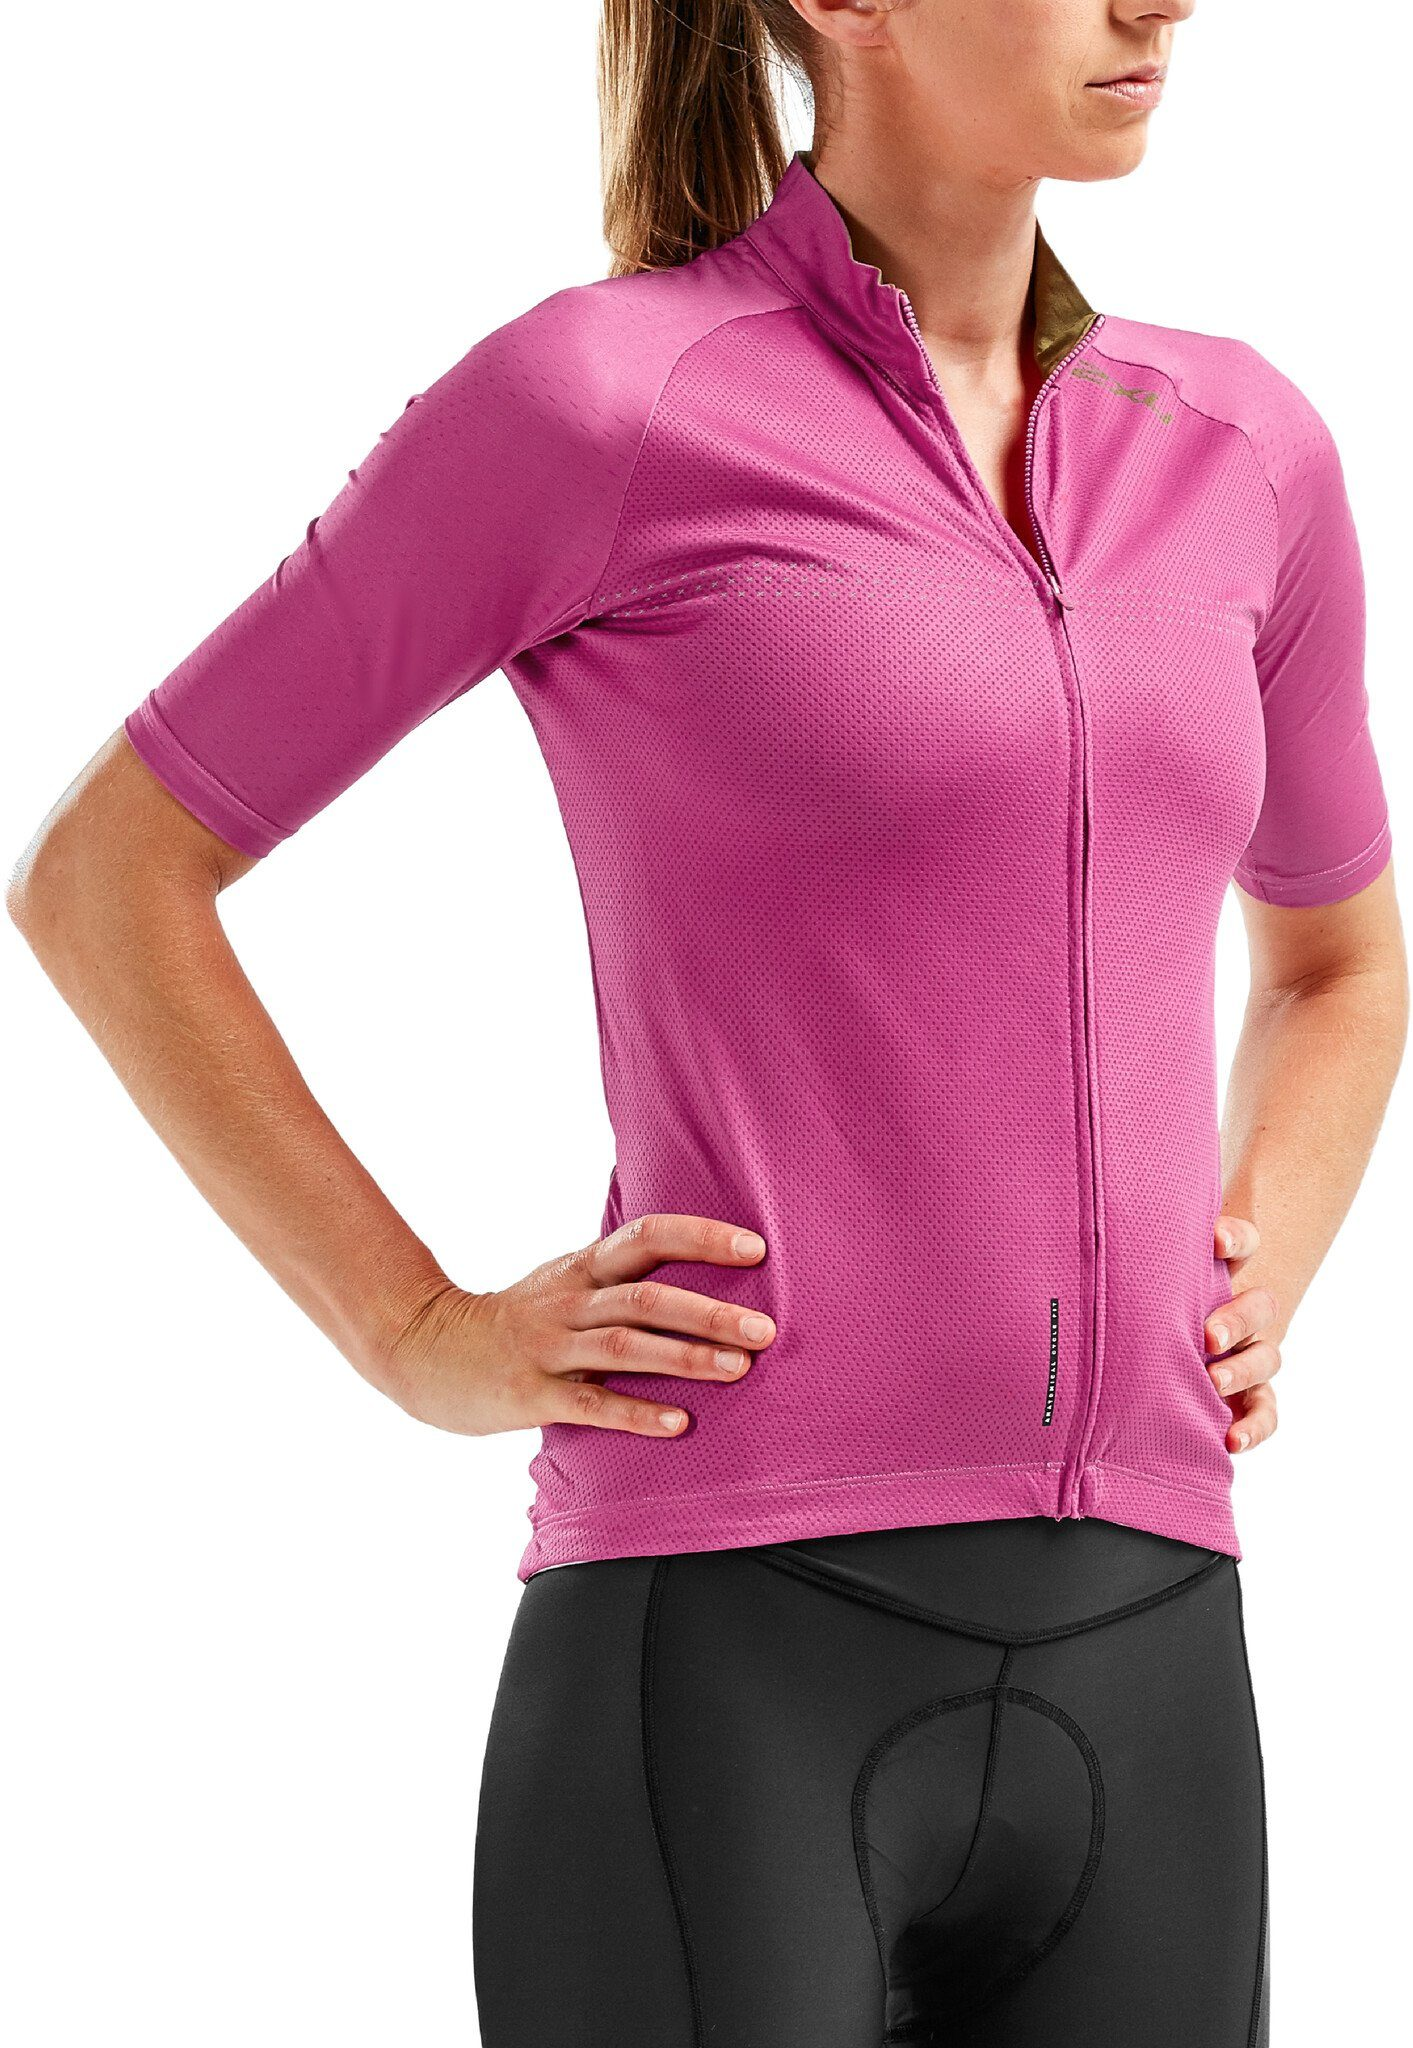 2xU Radtrikot Elite Cycle Trikot Damen kaufen